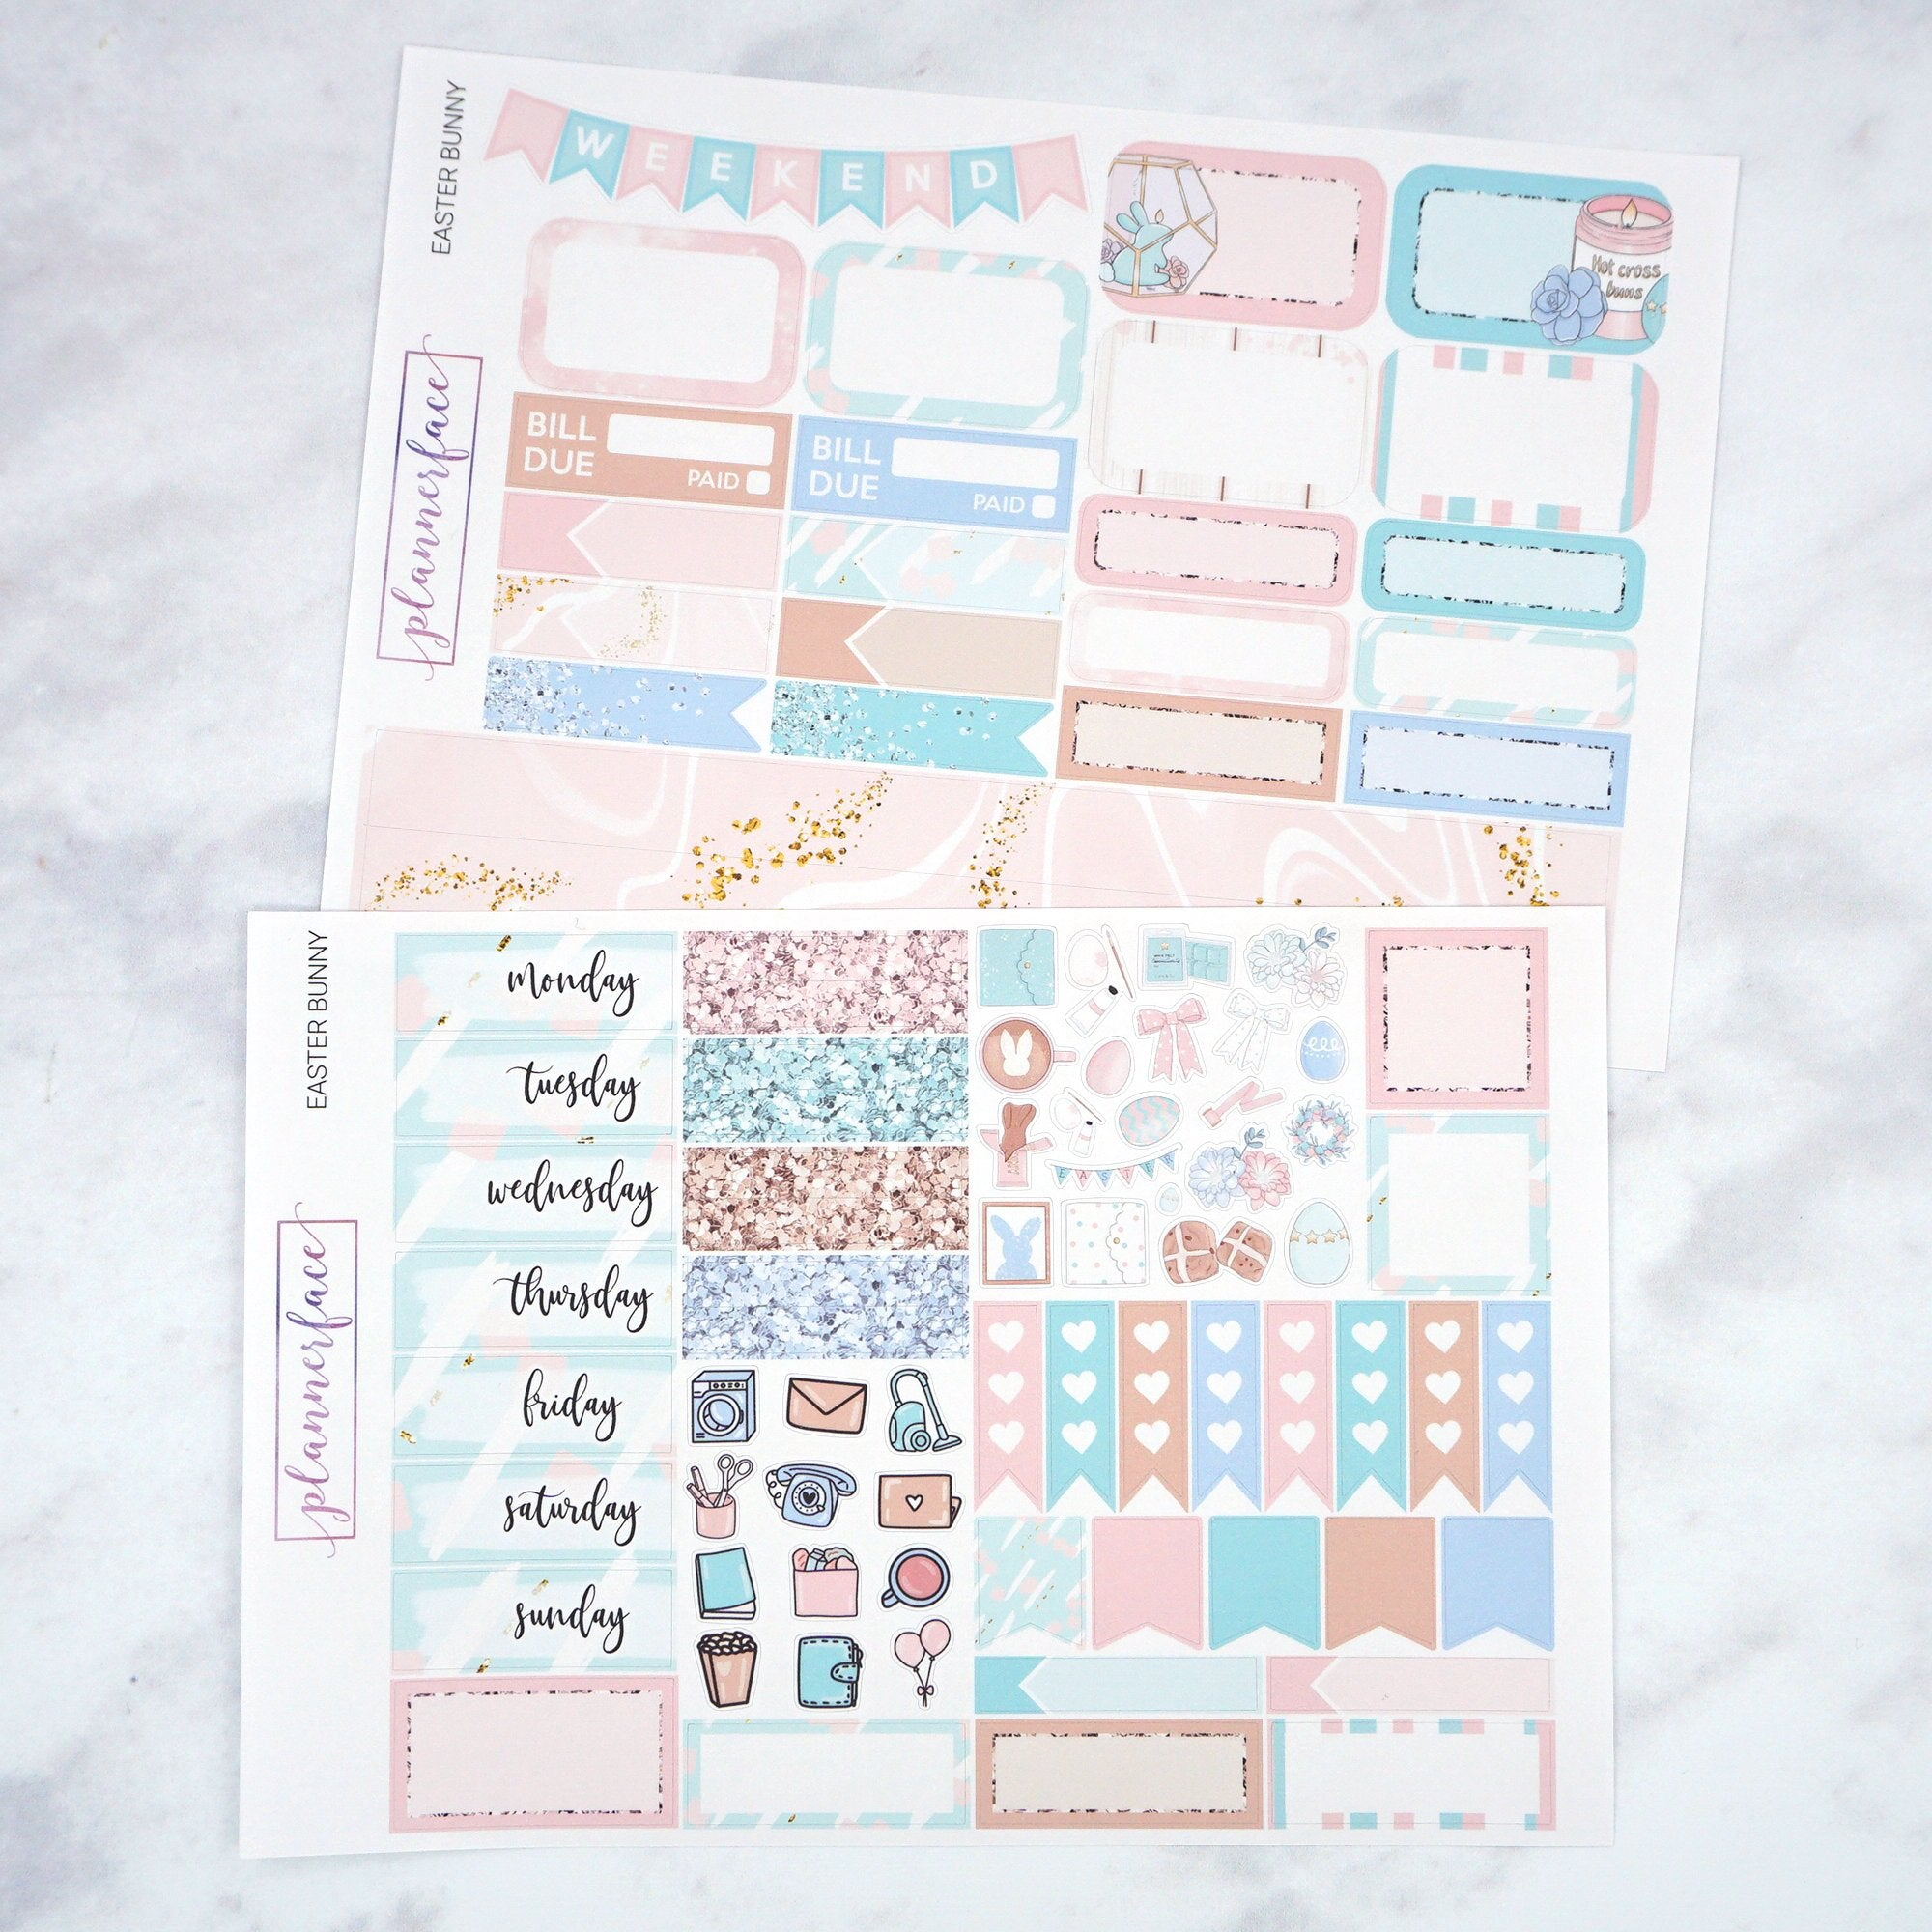 Plannerface Easter Bunny Mini Kit Planner Stickers